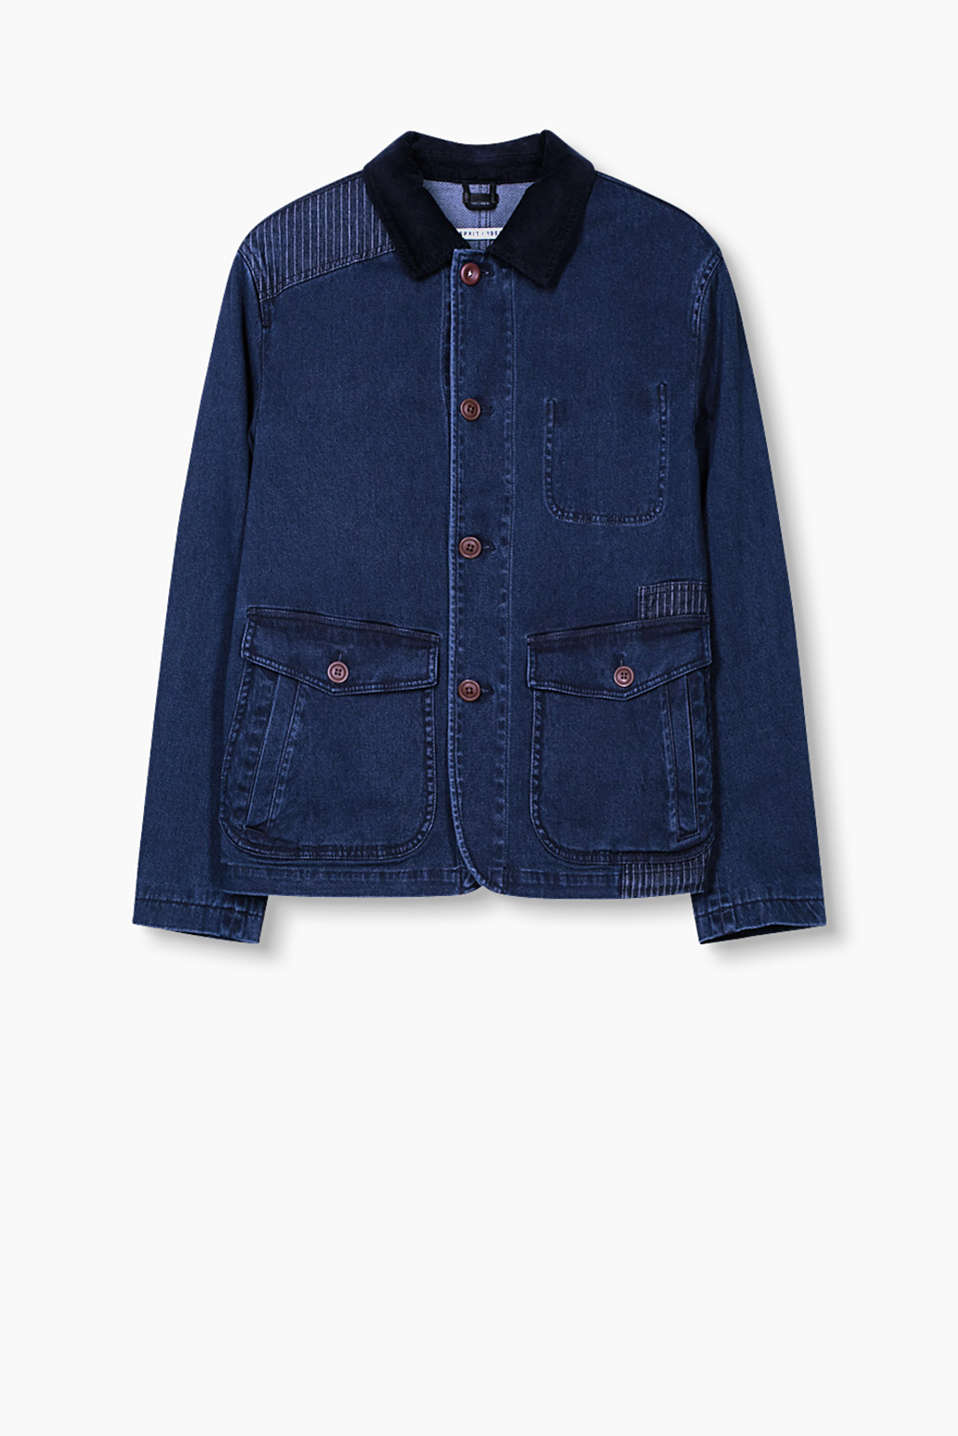 Cool mix of materials: Cotton denim jacket with pinstripe details and a corduroy collar